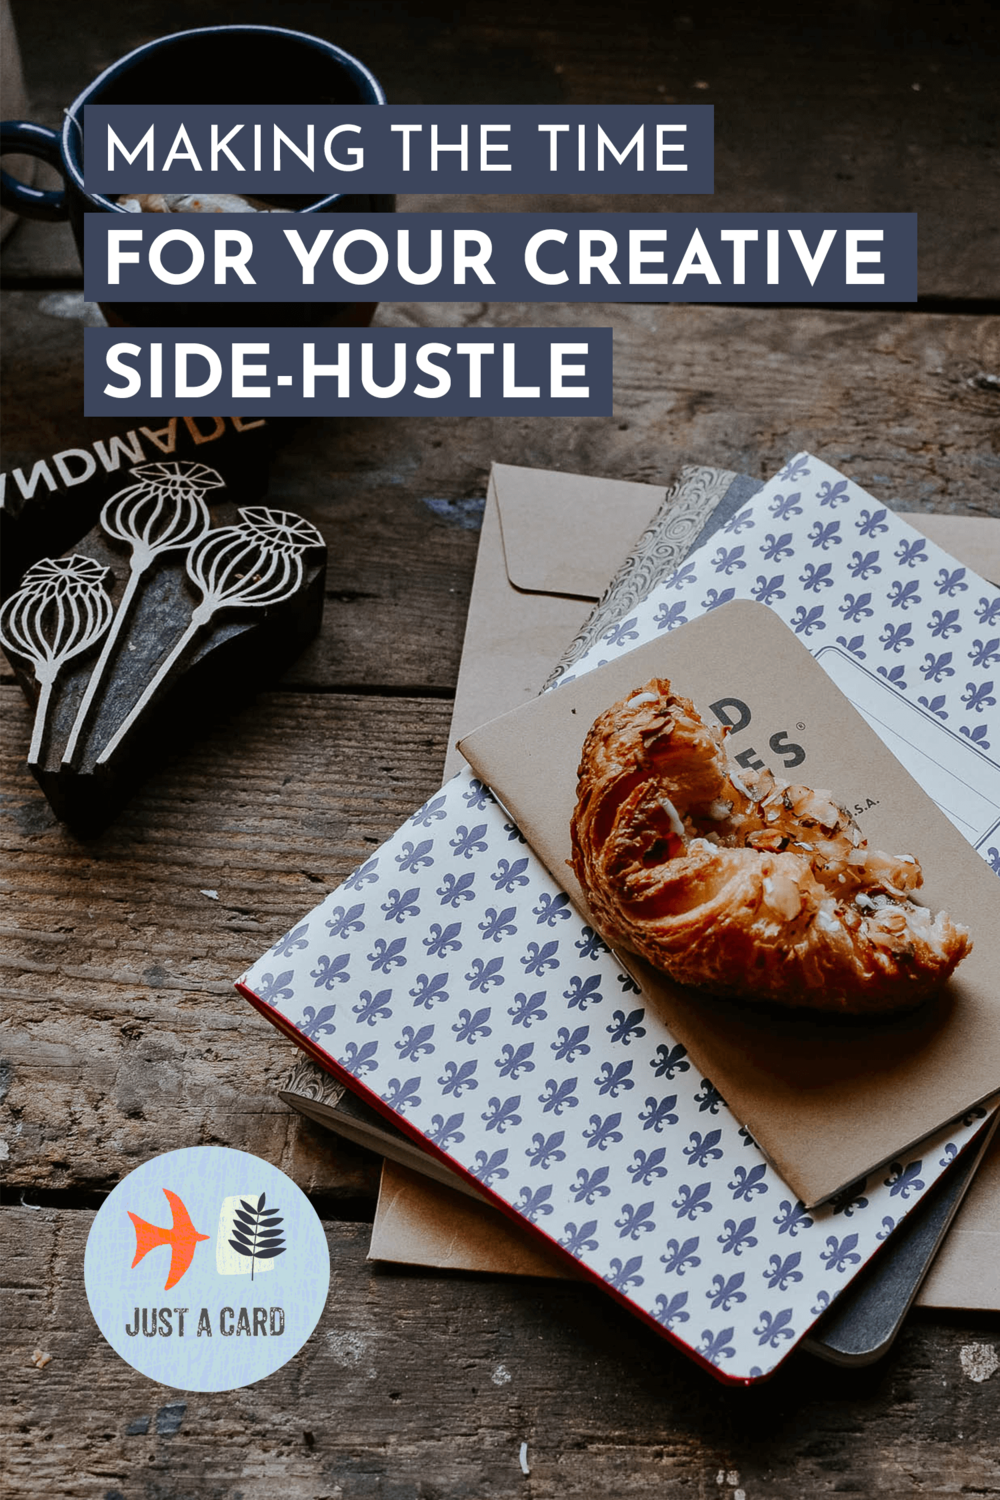 Making the time for your creative side-hustle - Josephine Brooks - Just a Card Blog-Pinnable Image.png